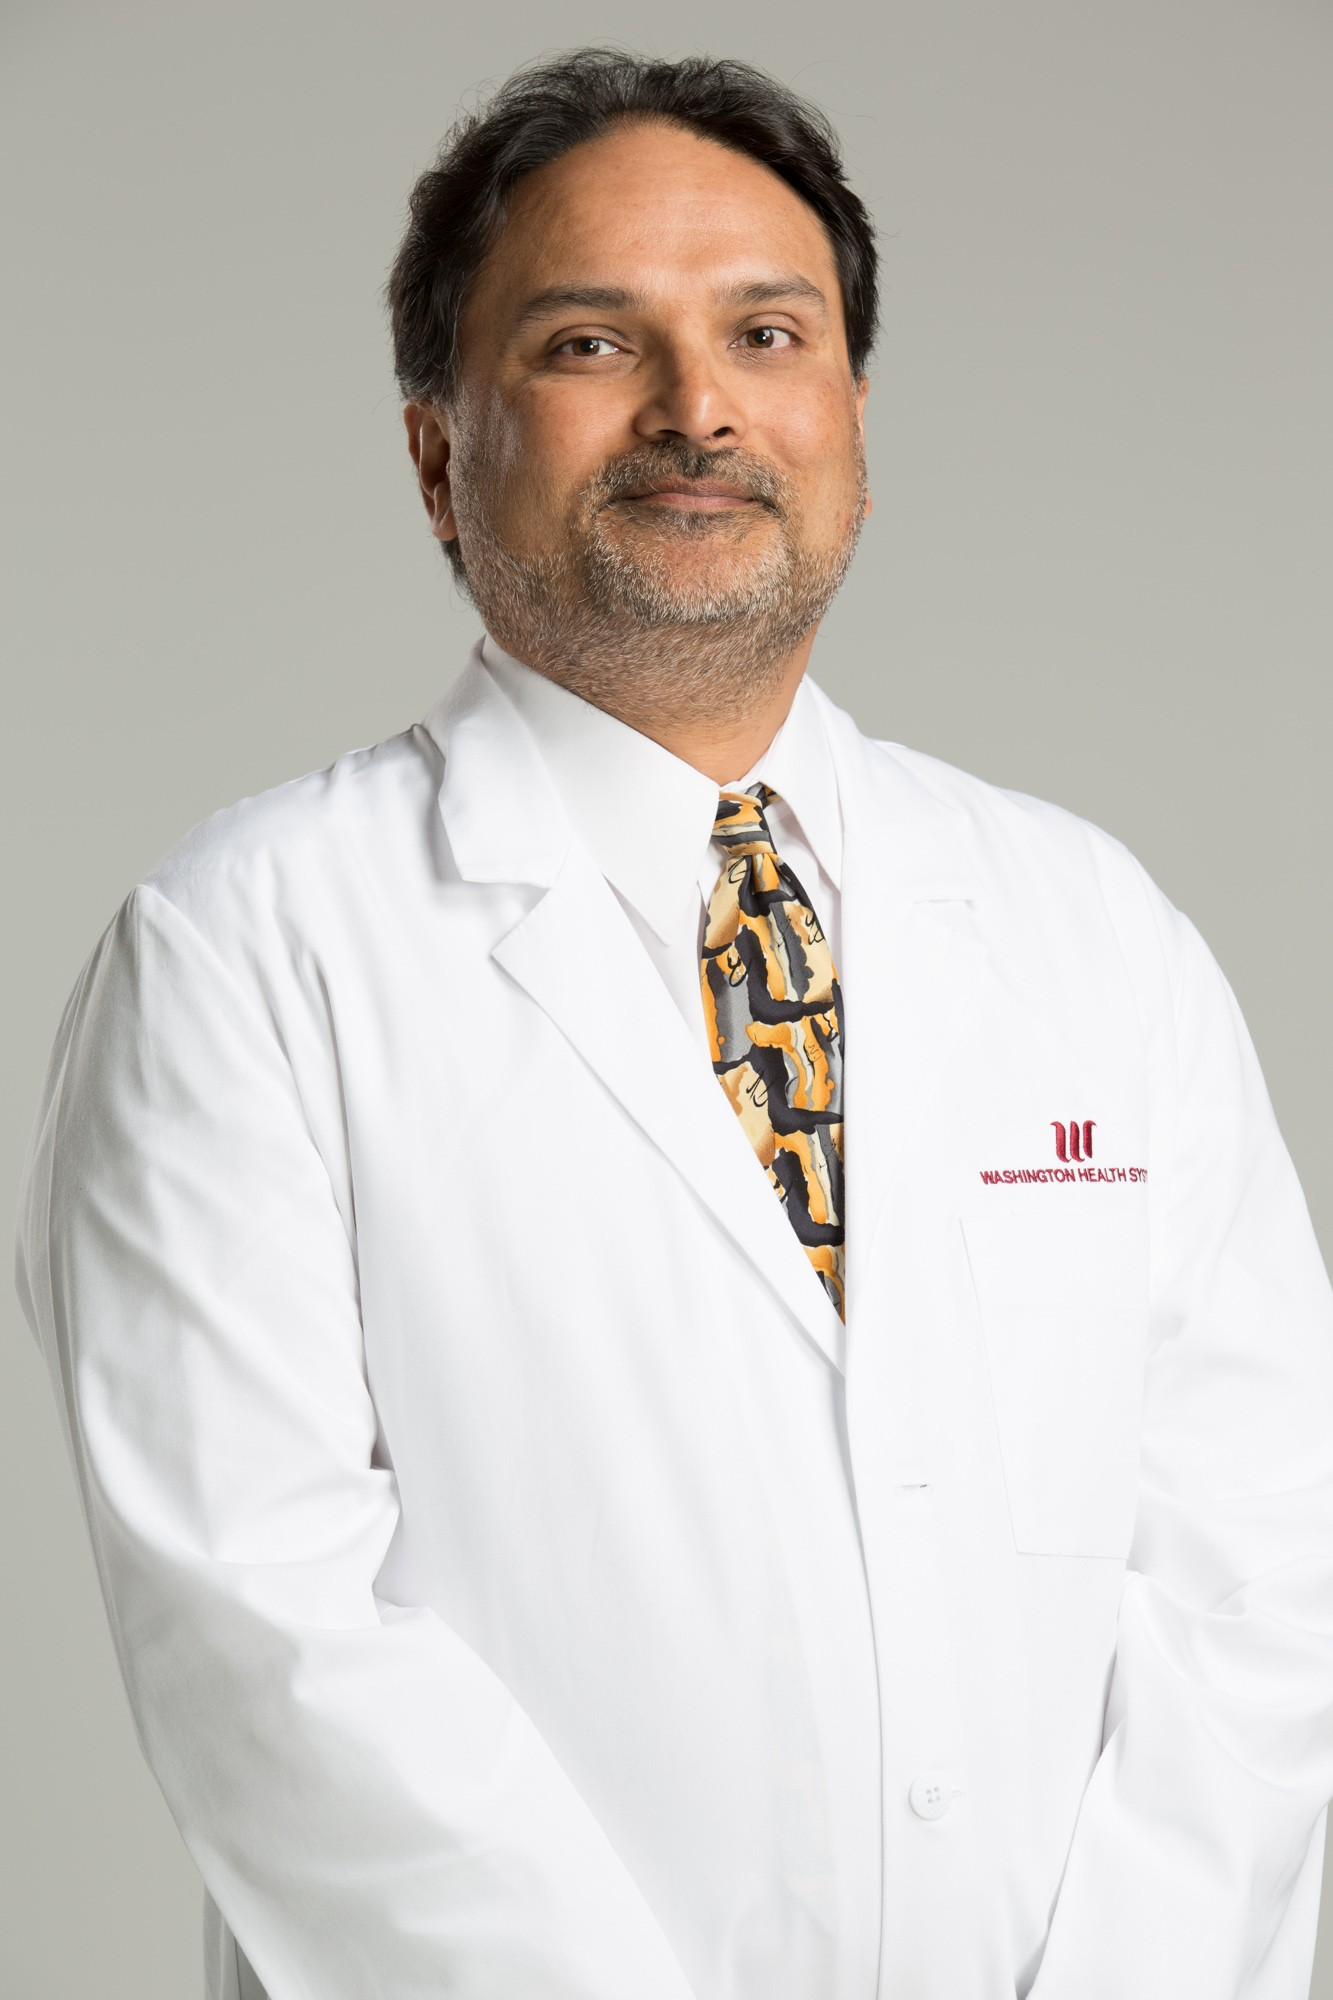 Photo of Malay C. Sheth, M.D.